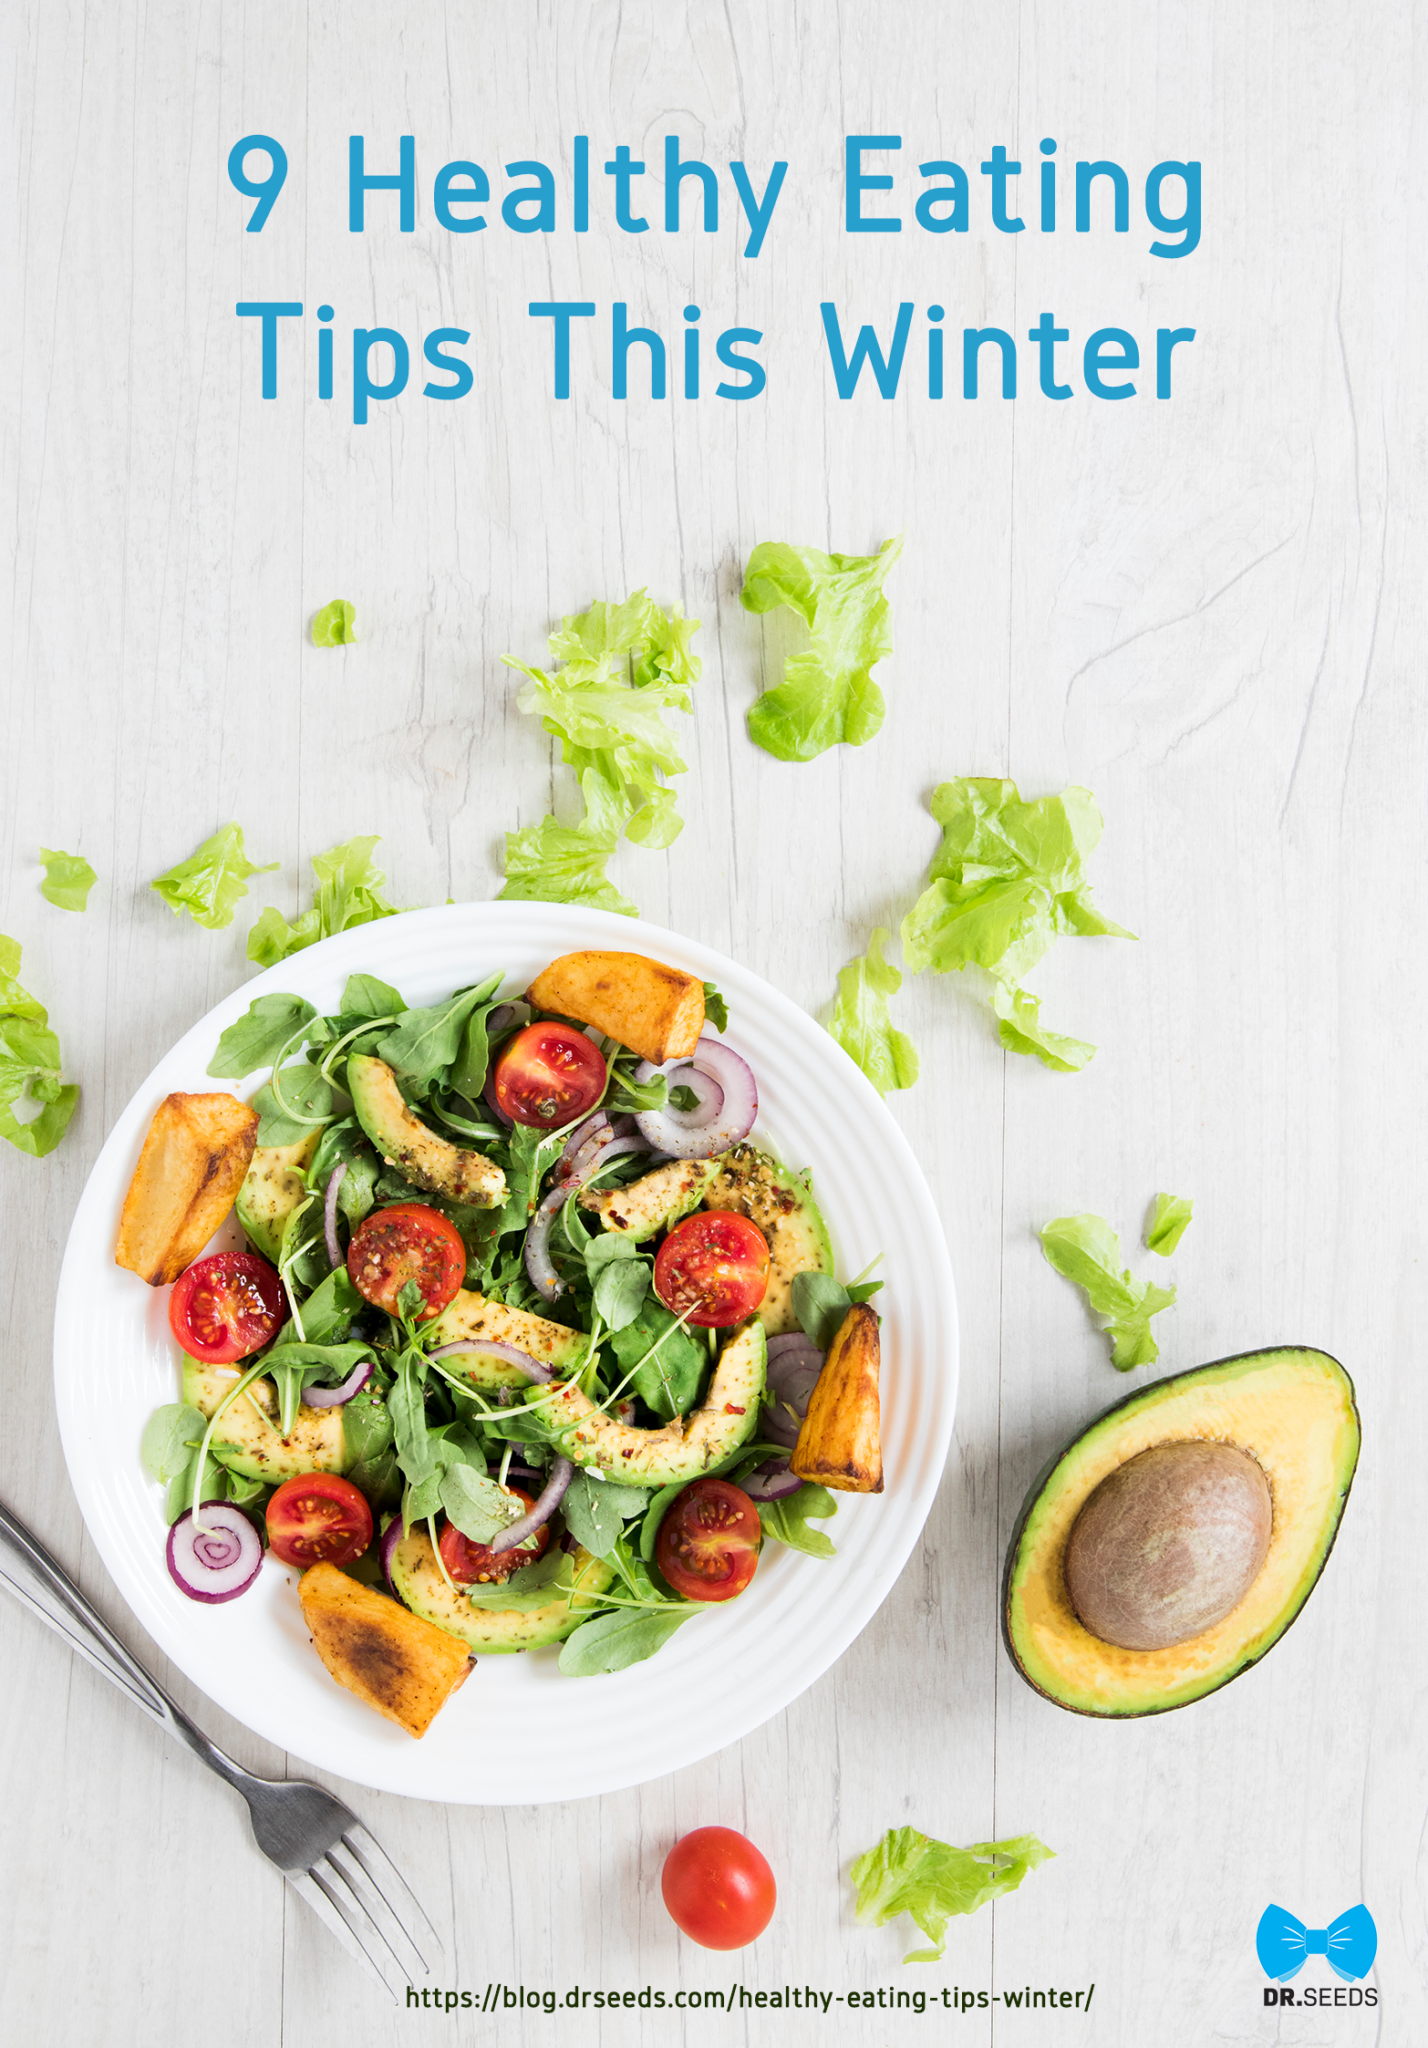 9 Healthy Eating Tips This Winter [INFOGRAPHIC] https://blog.drseeds.com/healthy-eating-tips-winter/